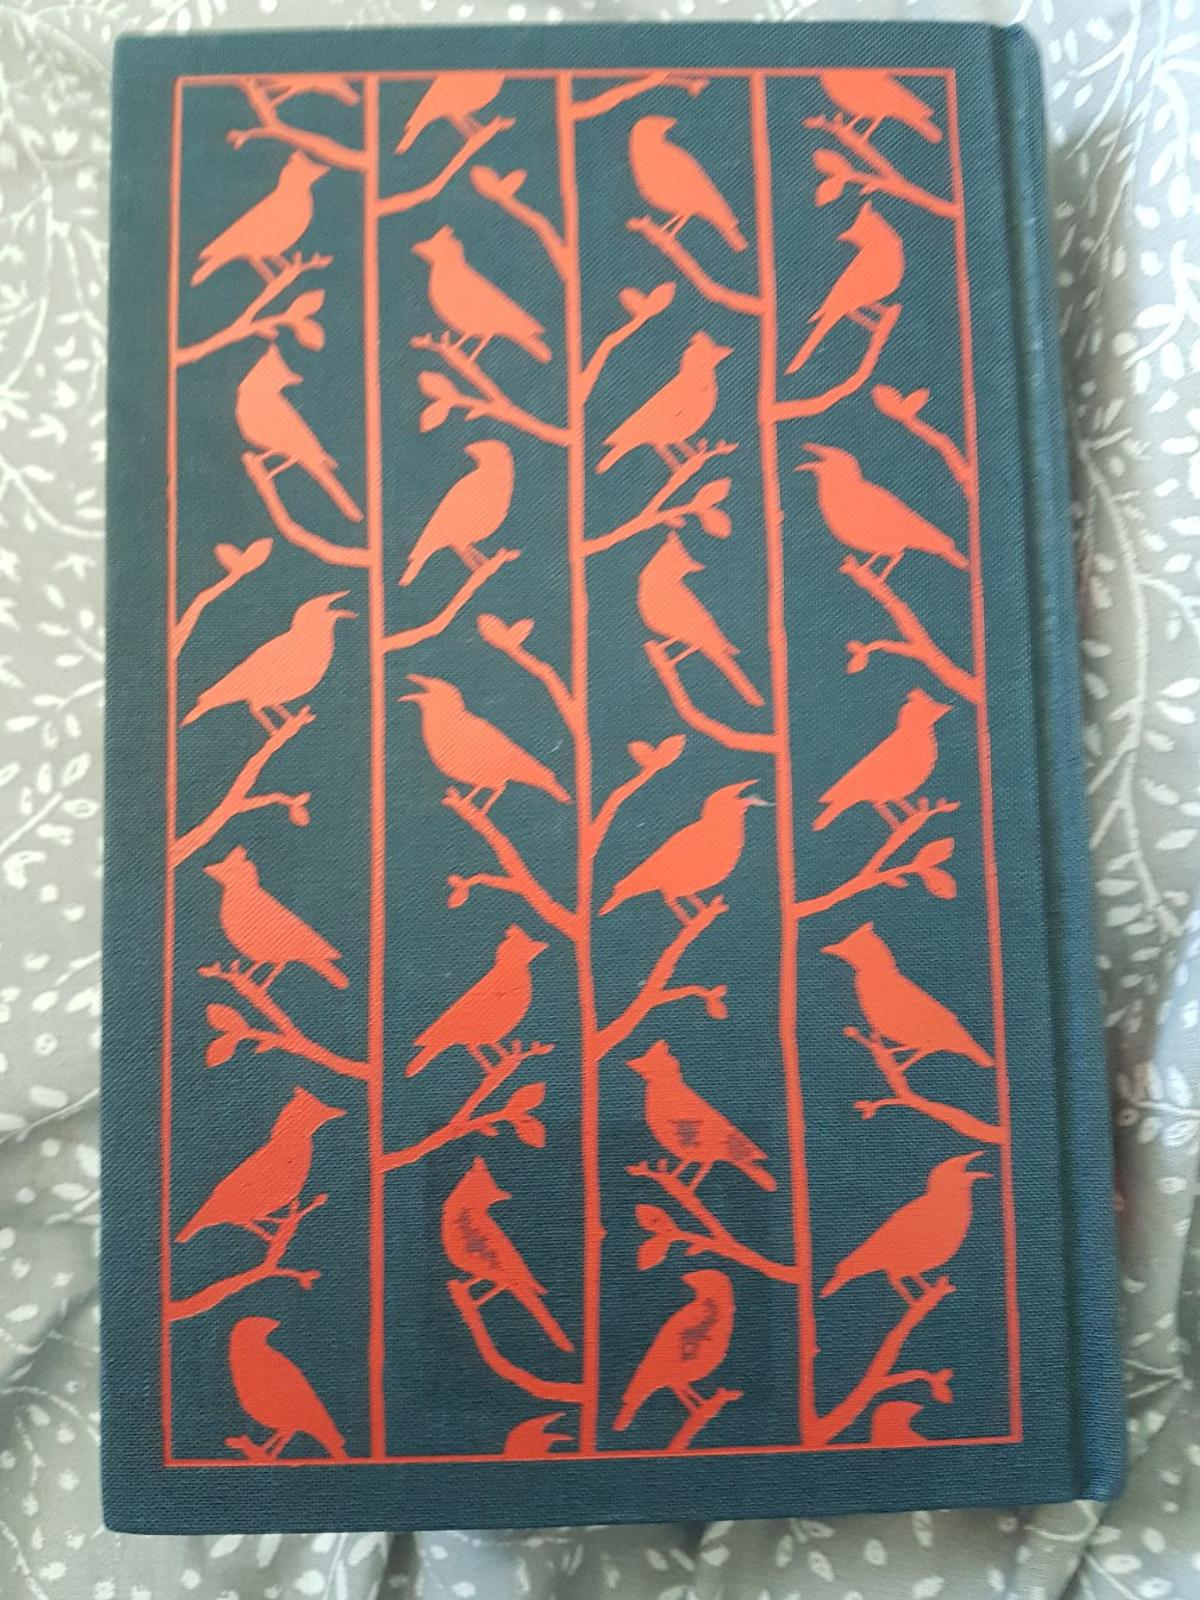 Les Misérables cloth bound Penguin classics in GU21 Woking